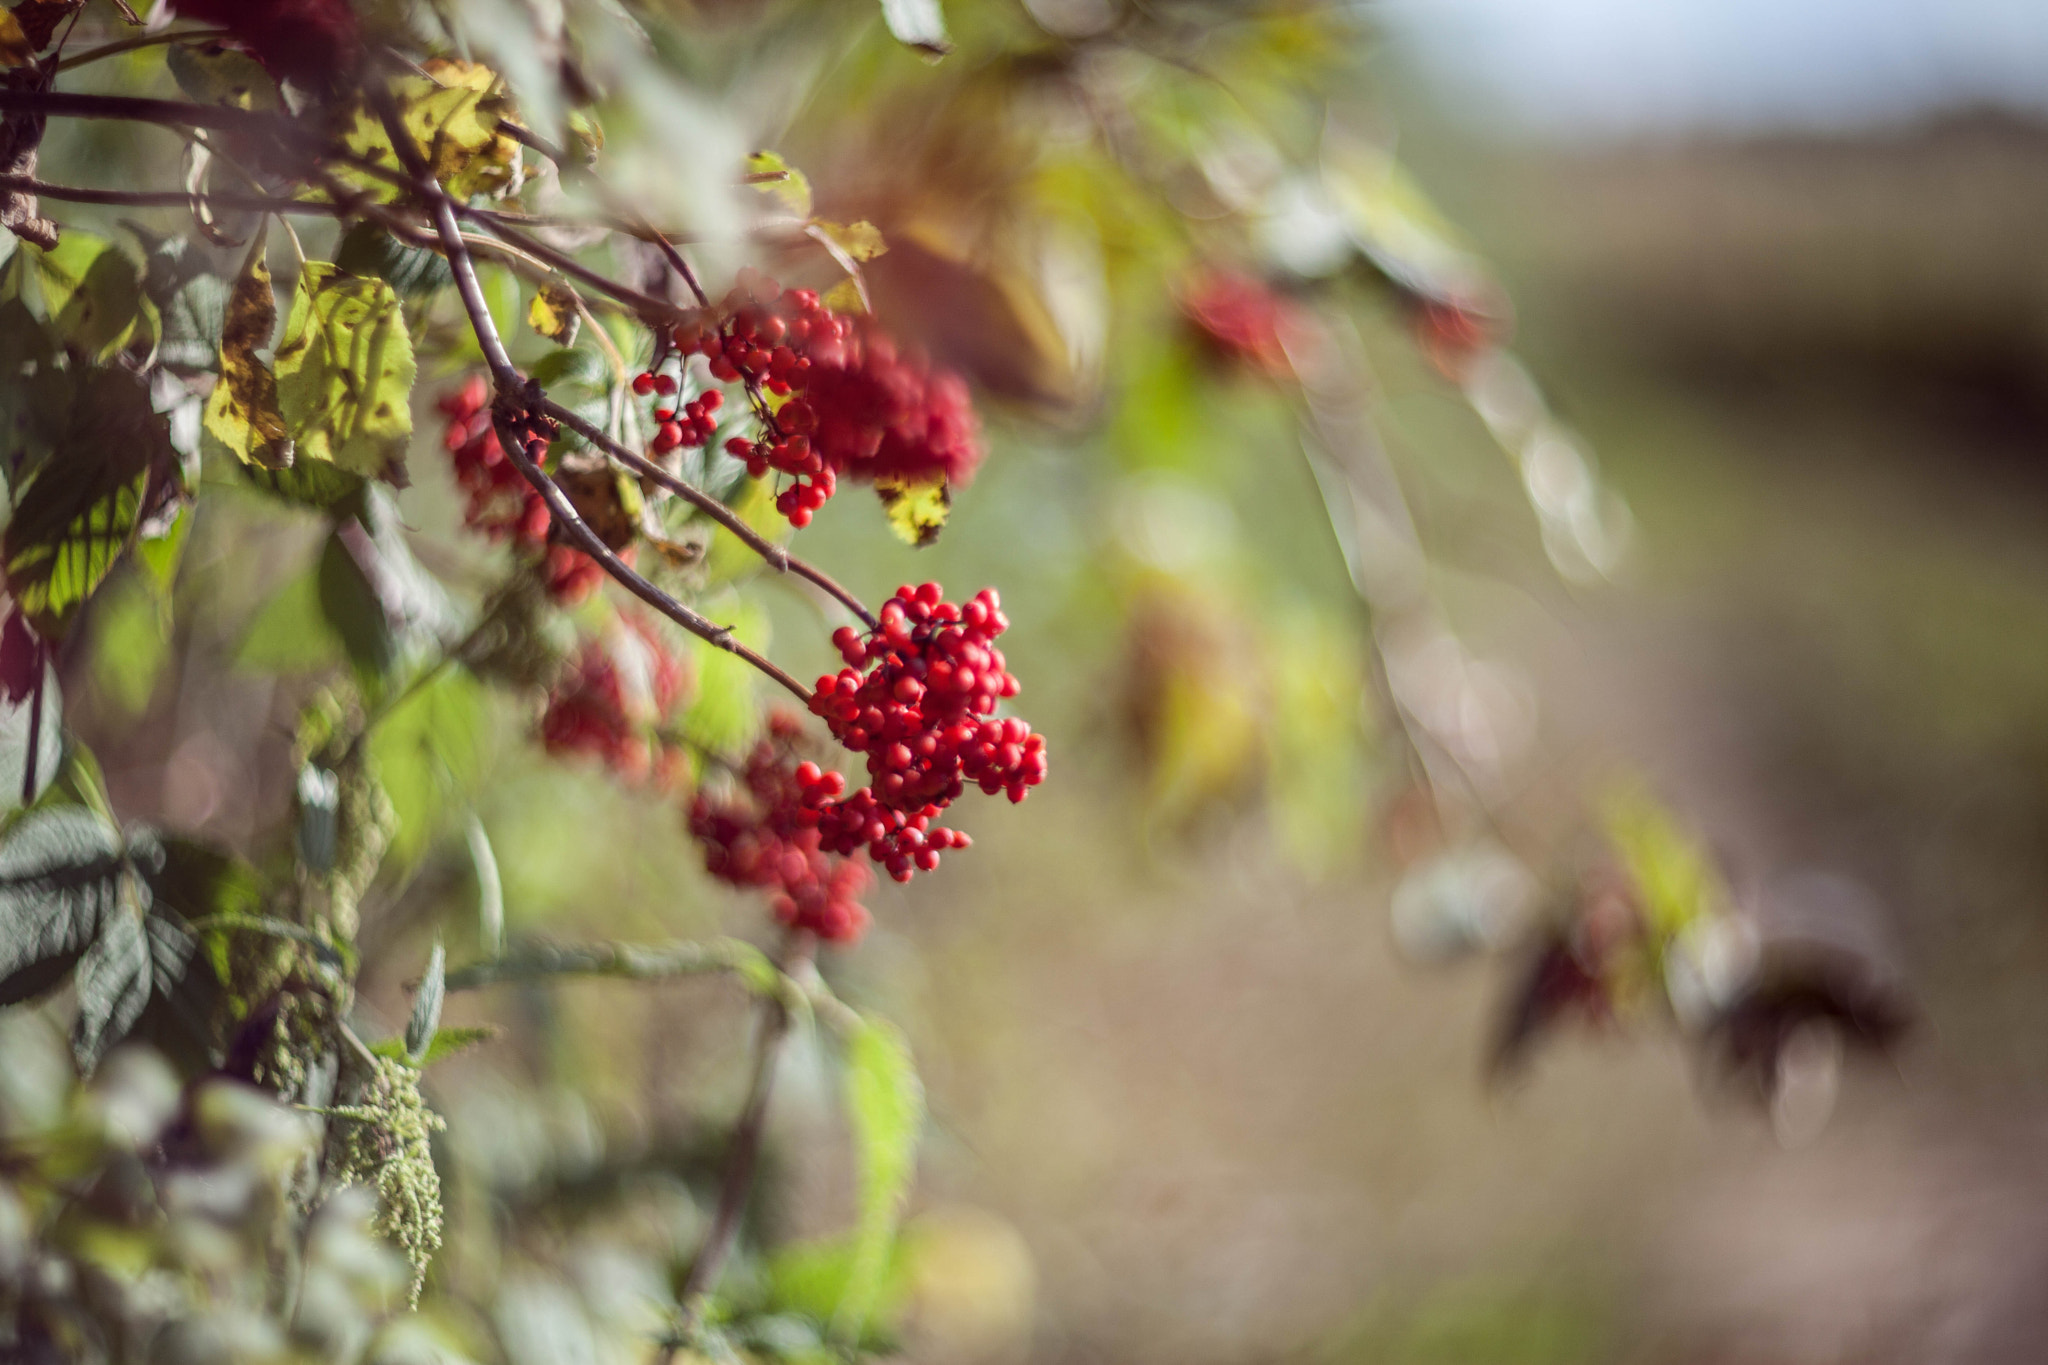 Photograph Berries by Dmitry Saveliev on 500px